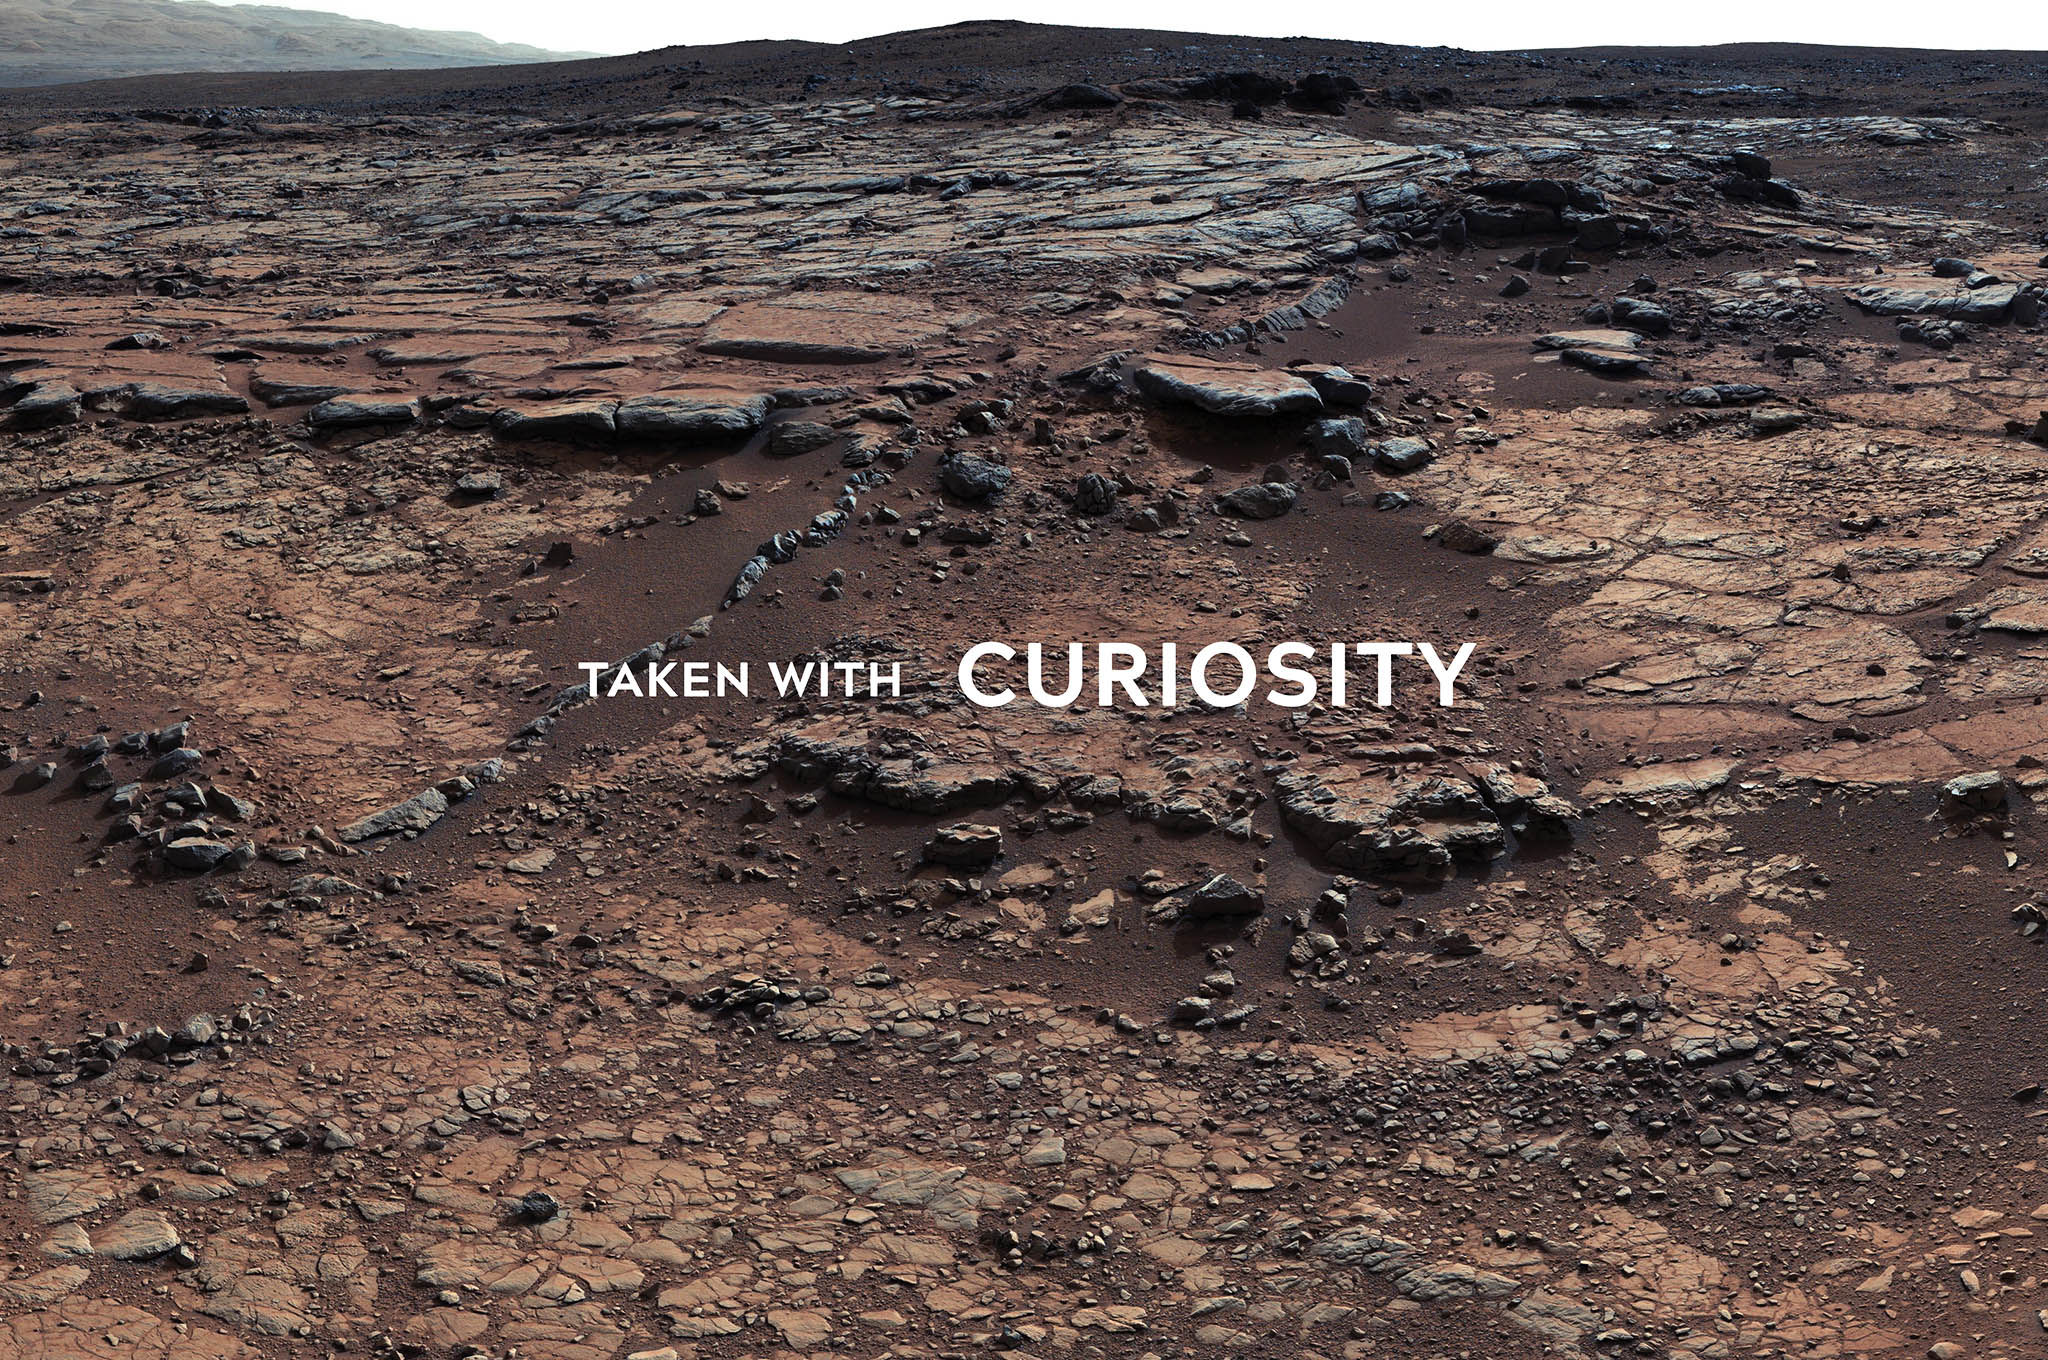 Mars Surface with Curiosity